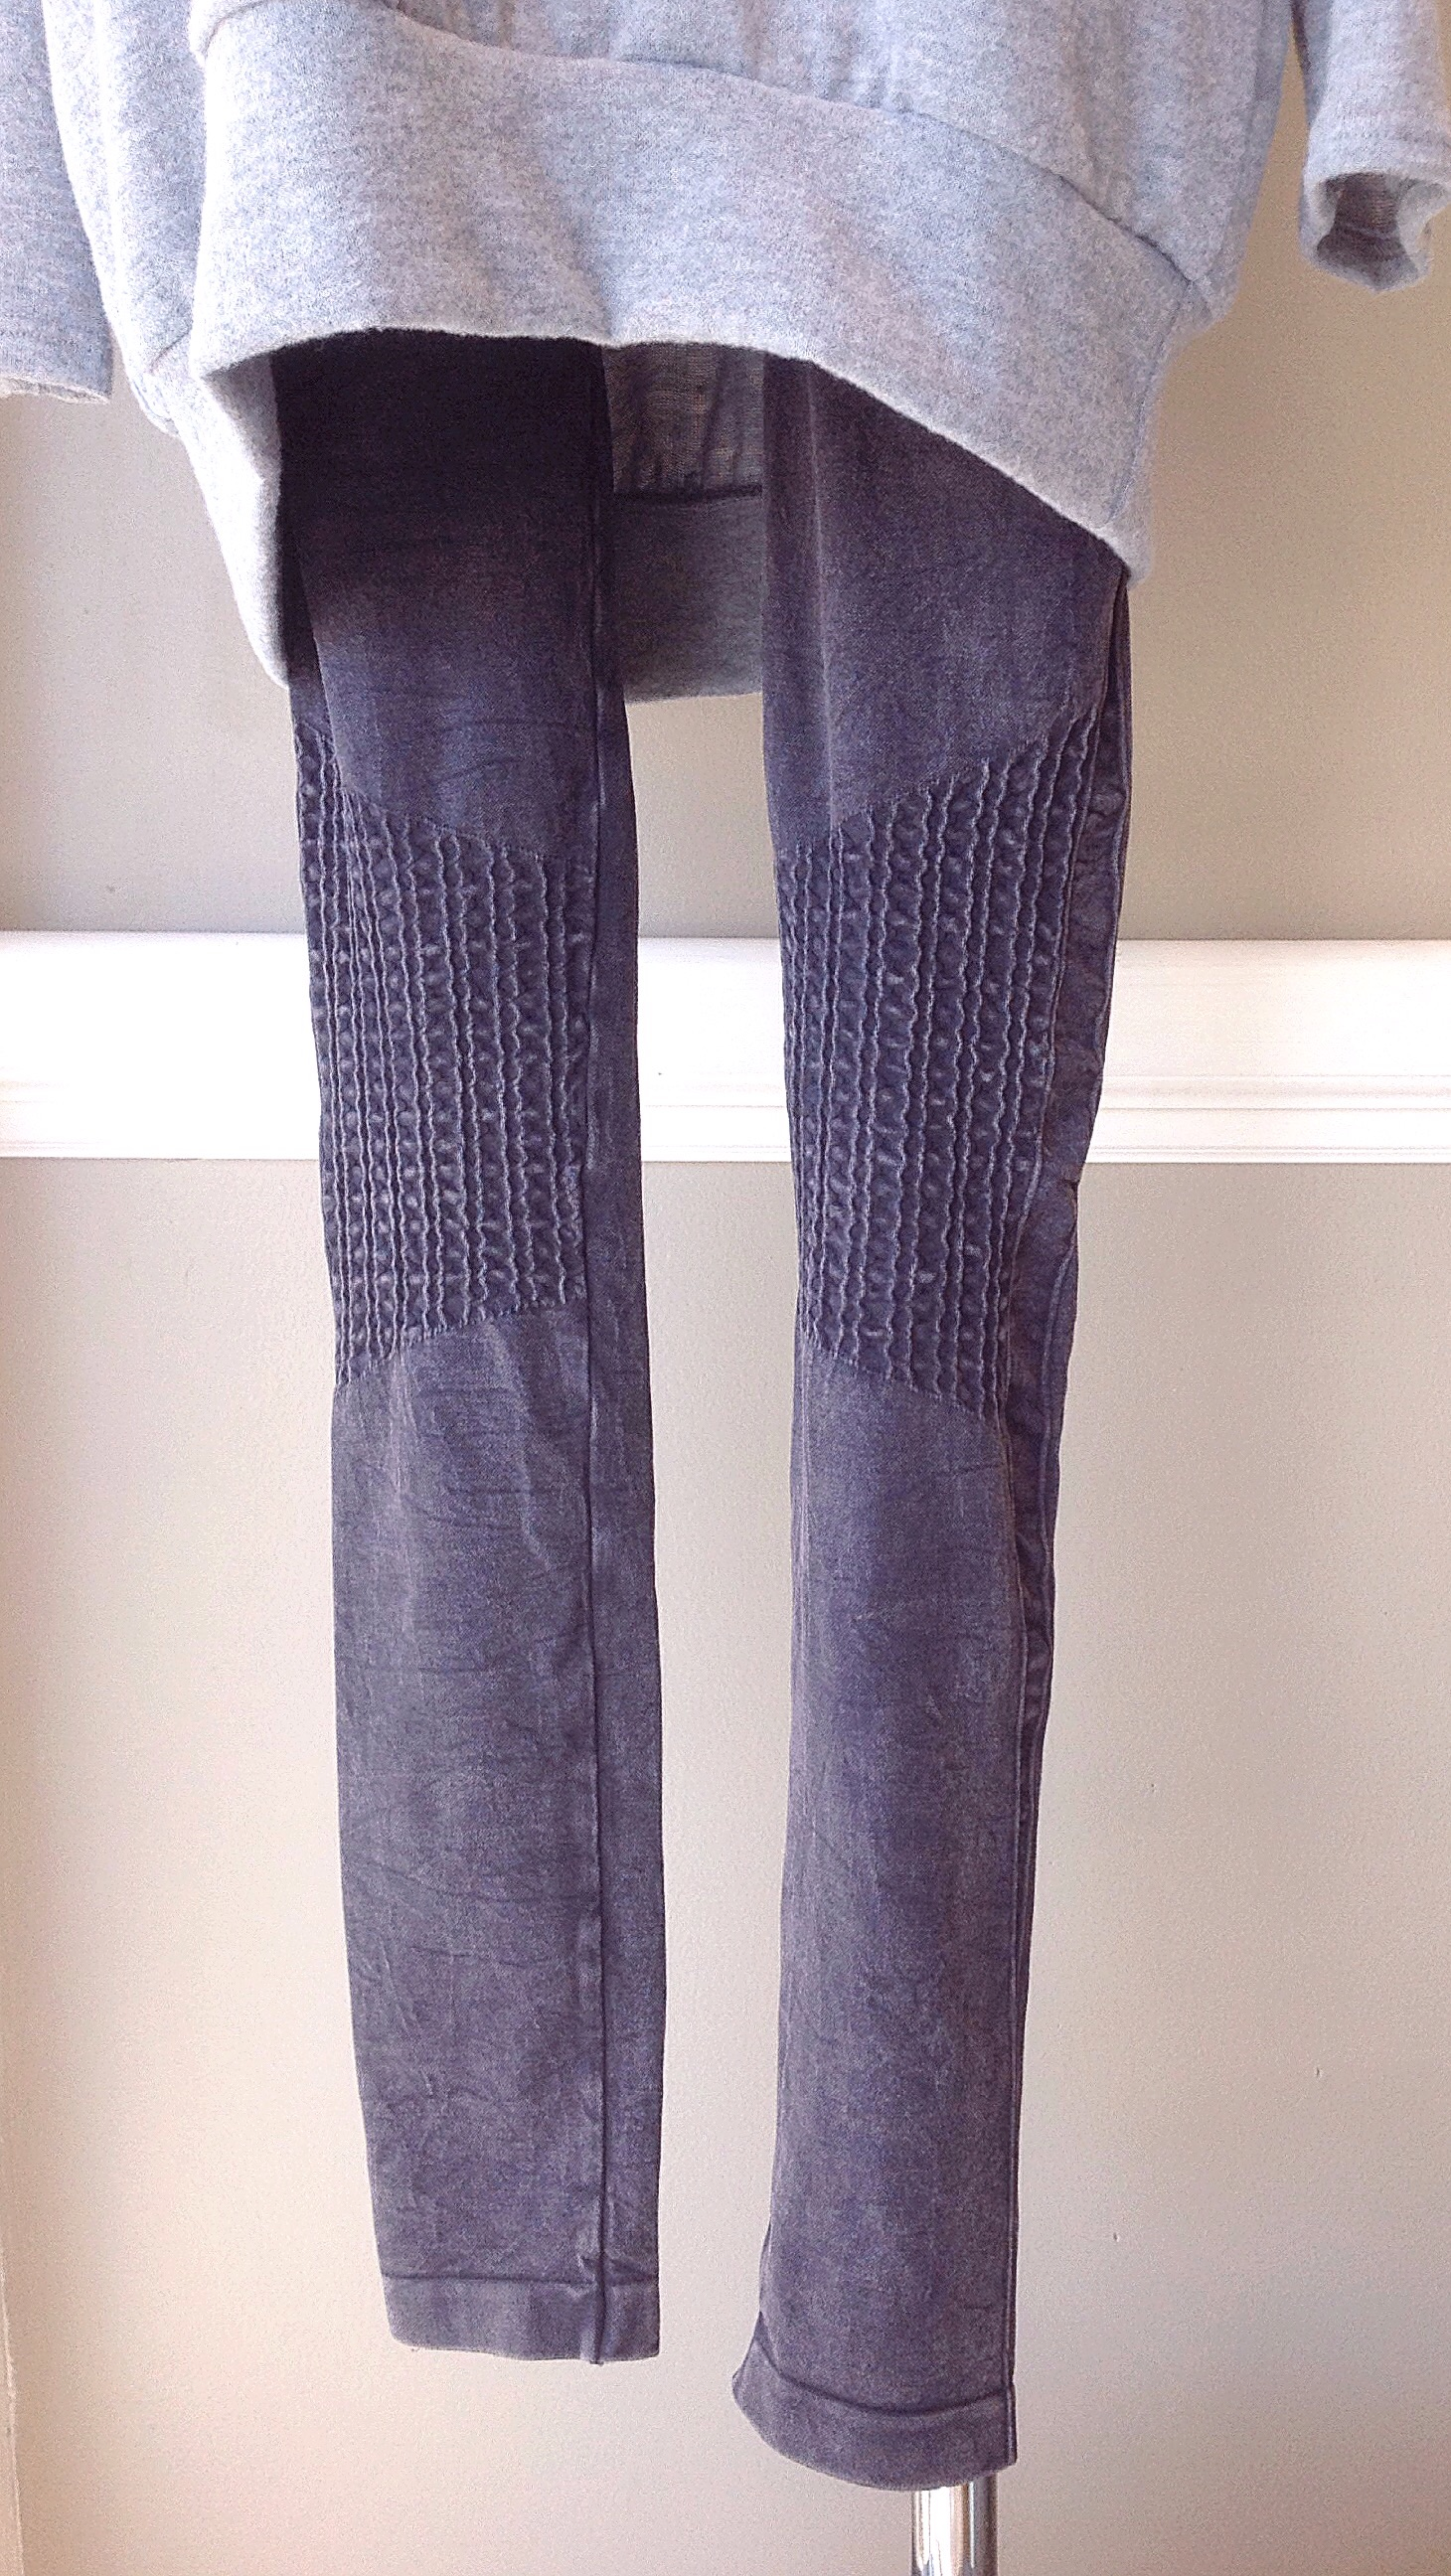 Midweight legging with shirring detail in mottled grey, $28